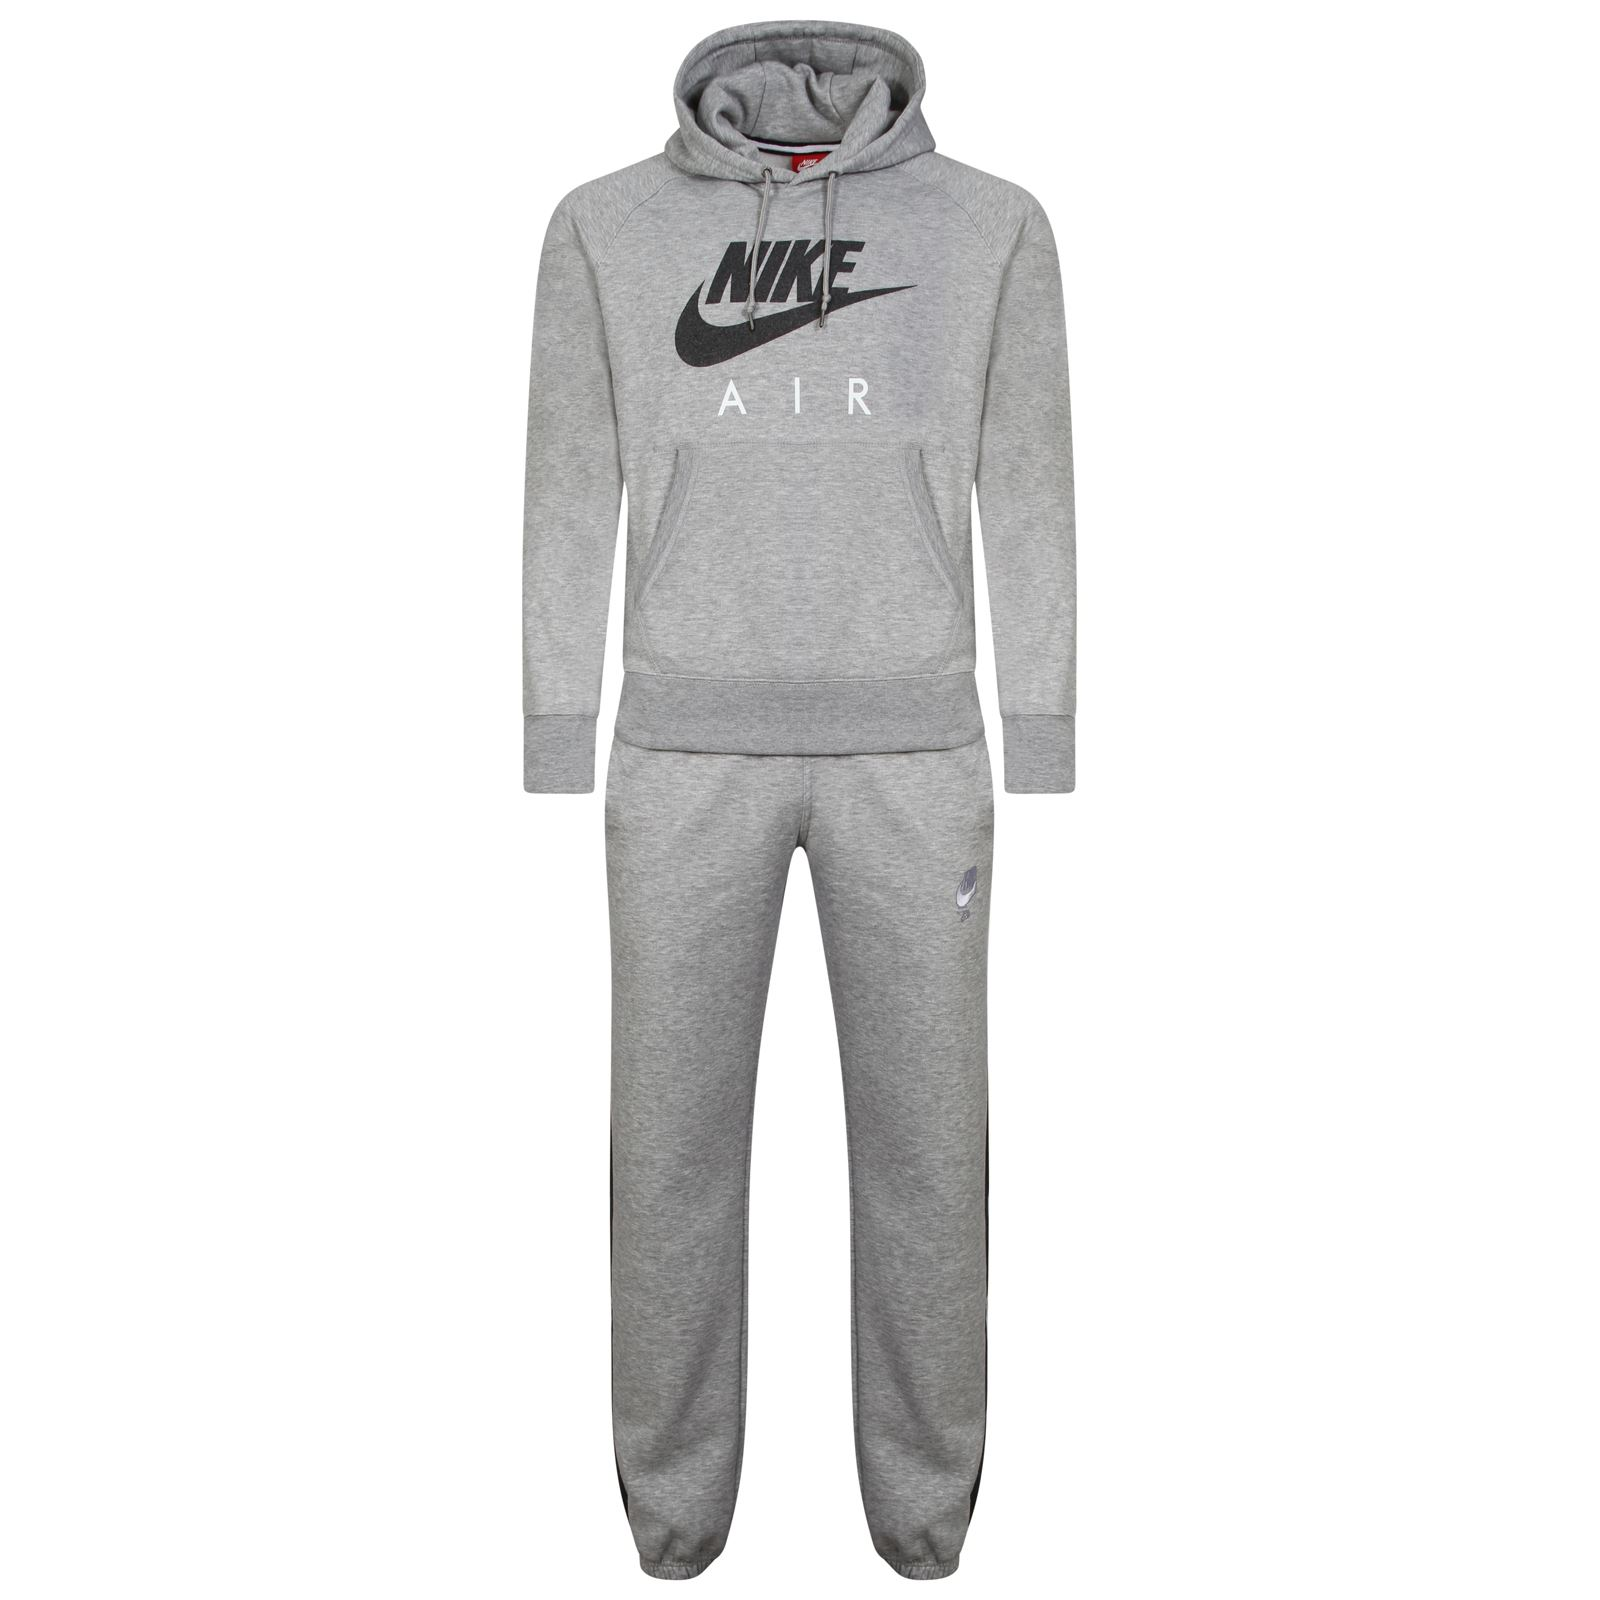 Find great deals on eBay for mens nike fleece tracksuit. Shop with confidence.